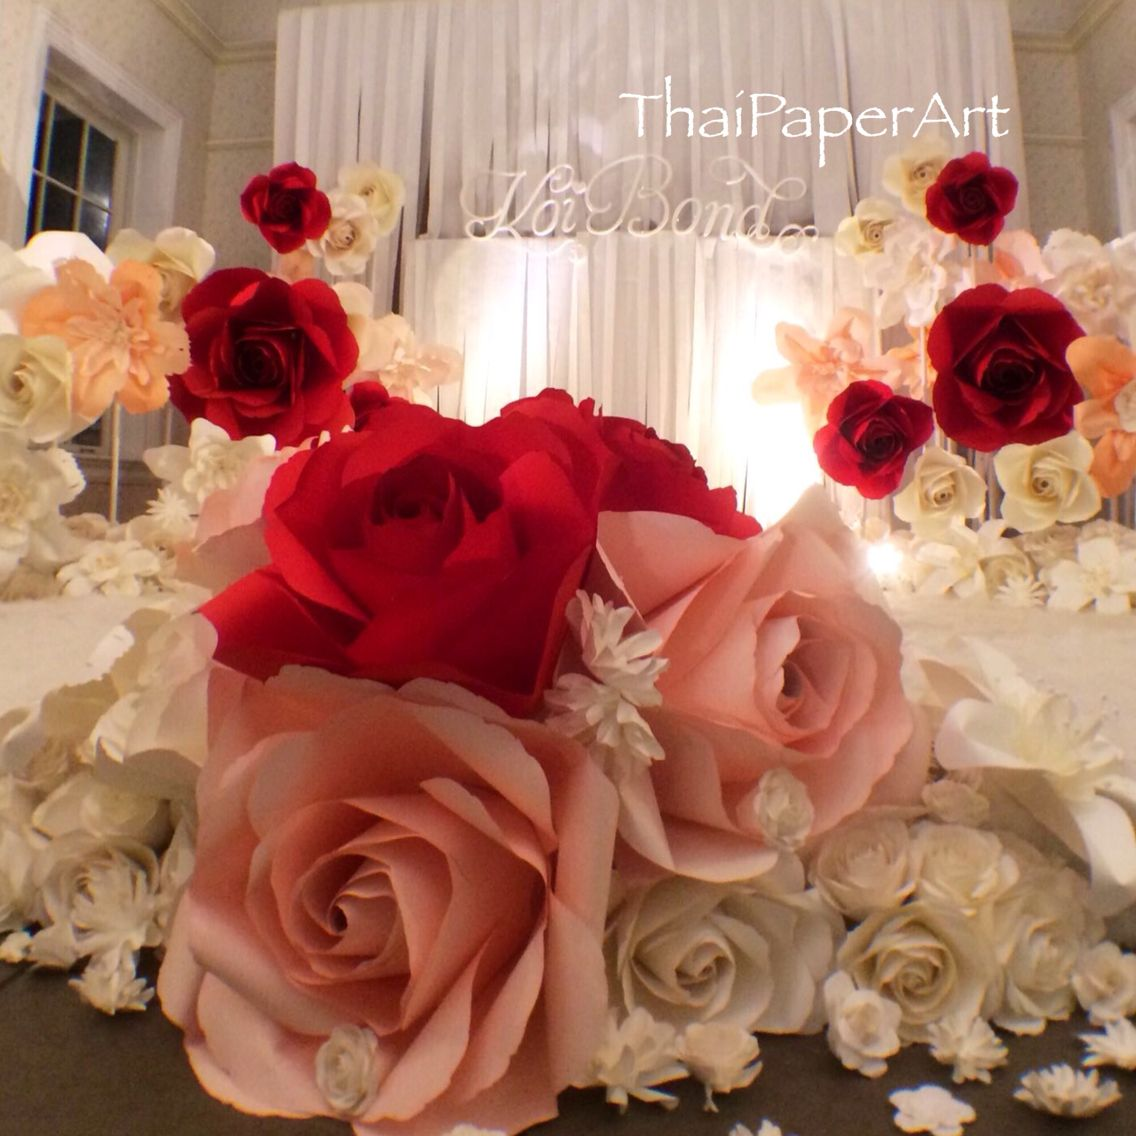 We provide high quality of paper flowers for every beautiful craft we provide high quality of paper flowers for every beautiful craft projects wedding reception and parties our craft supply direct from bangkok thailand mightylinksfo Gallery